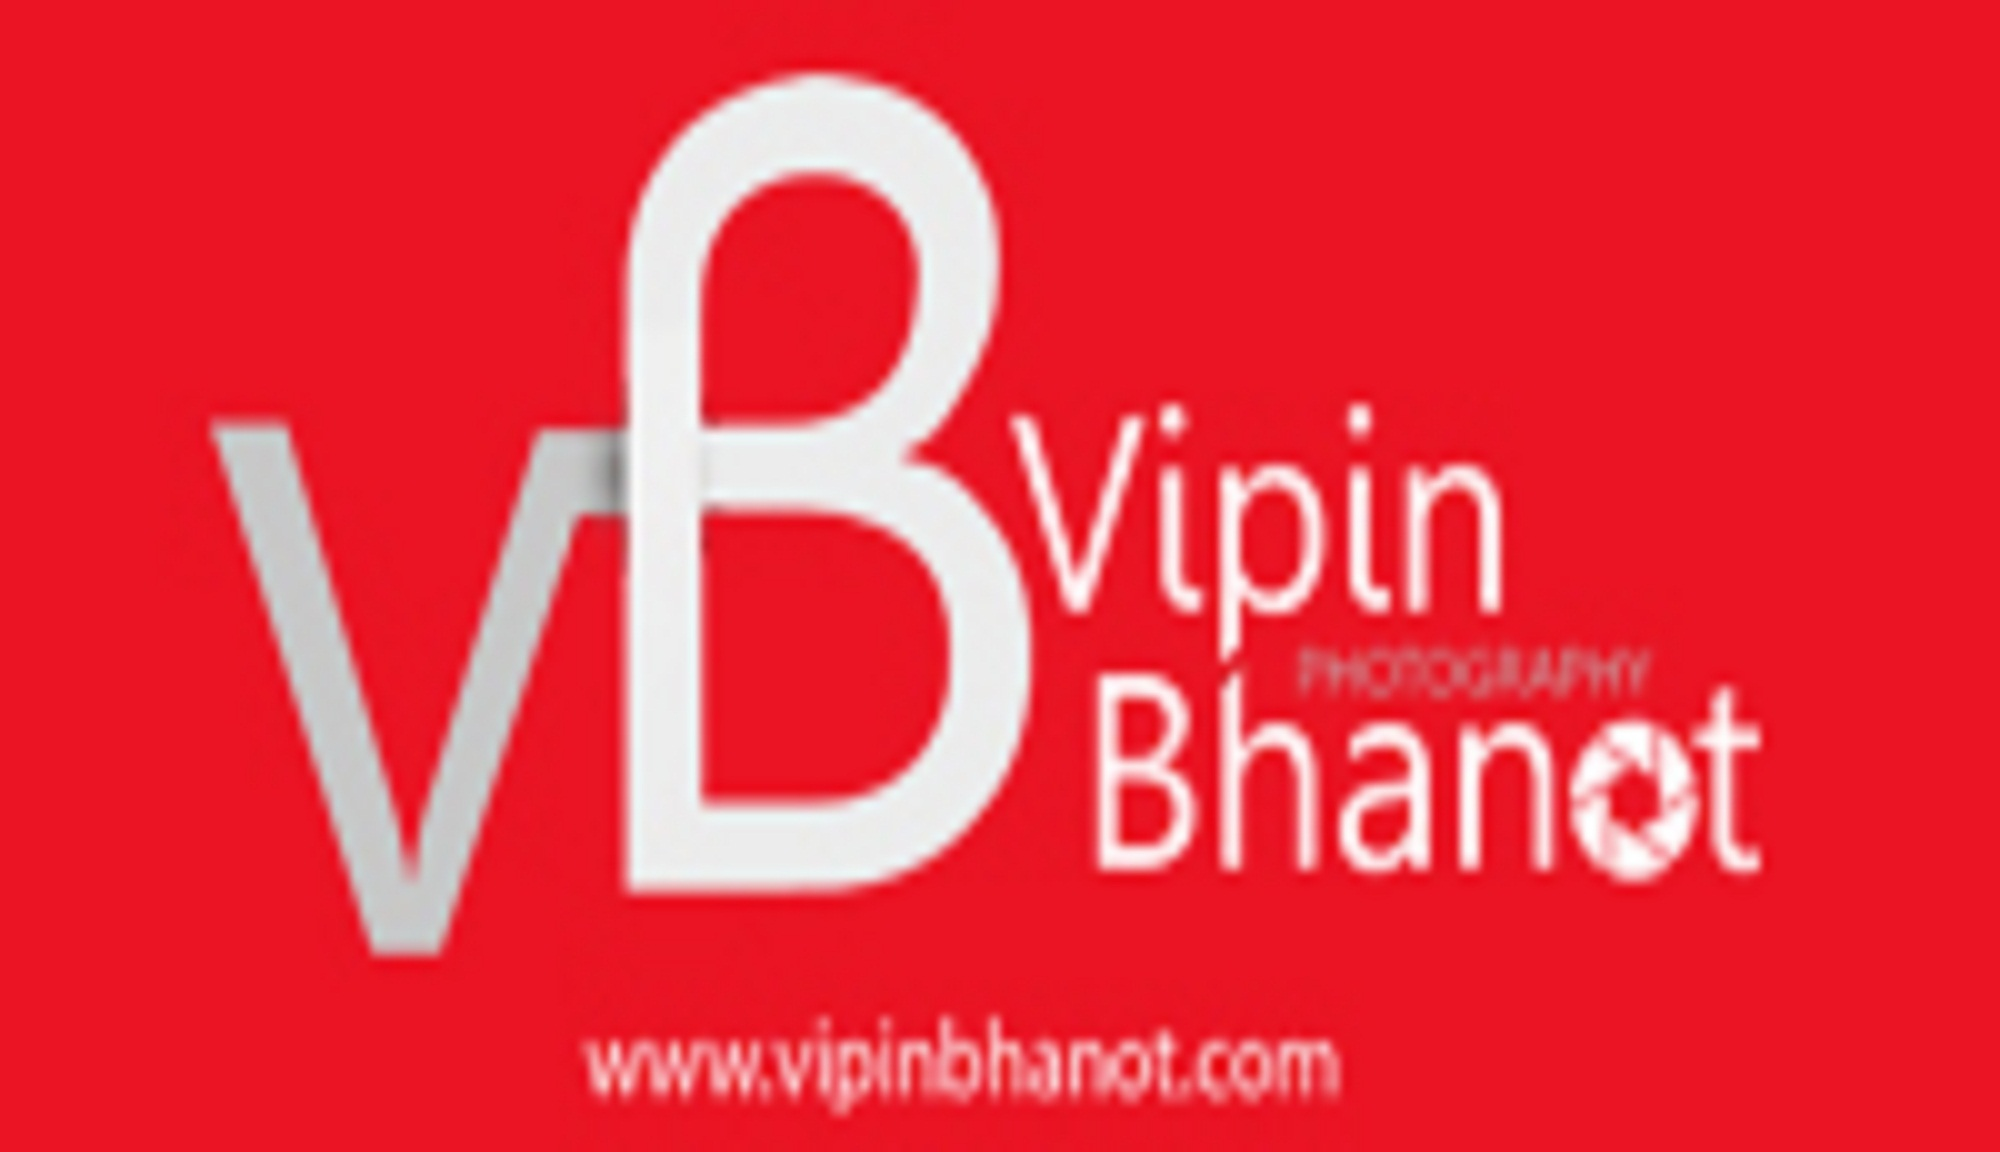 profile of Vipinbhanot